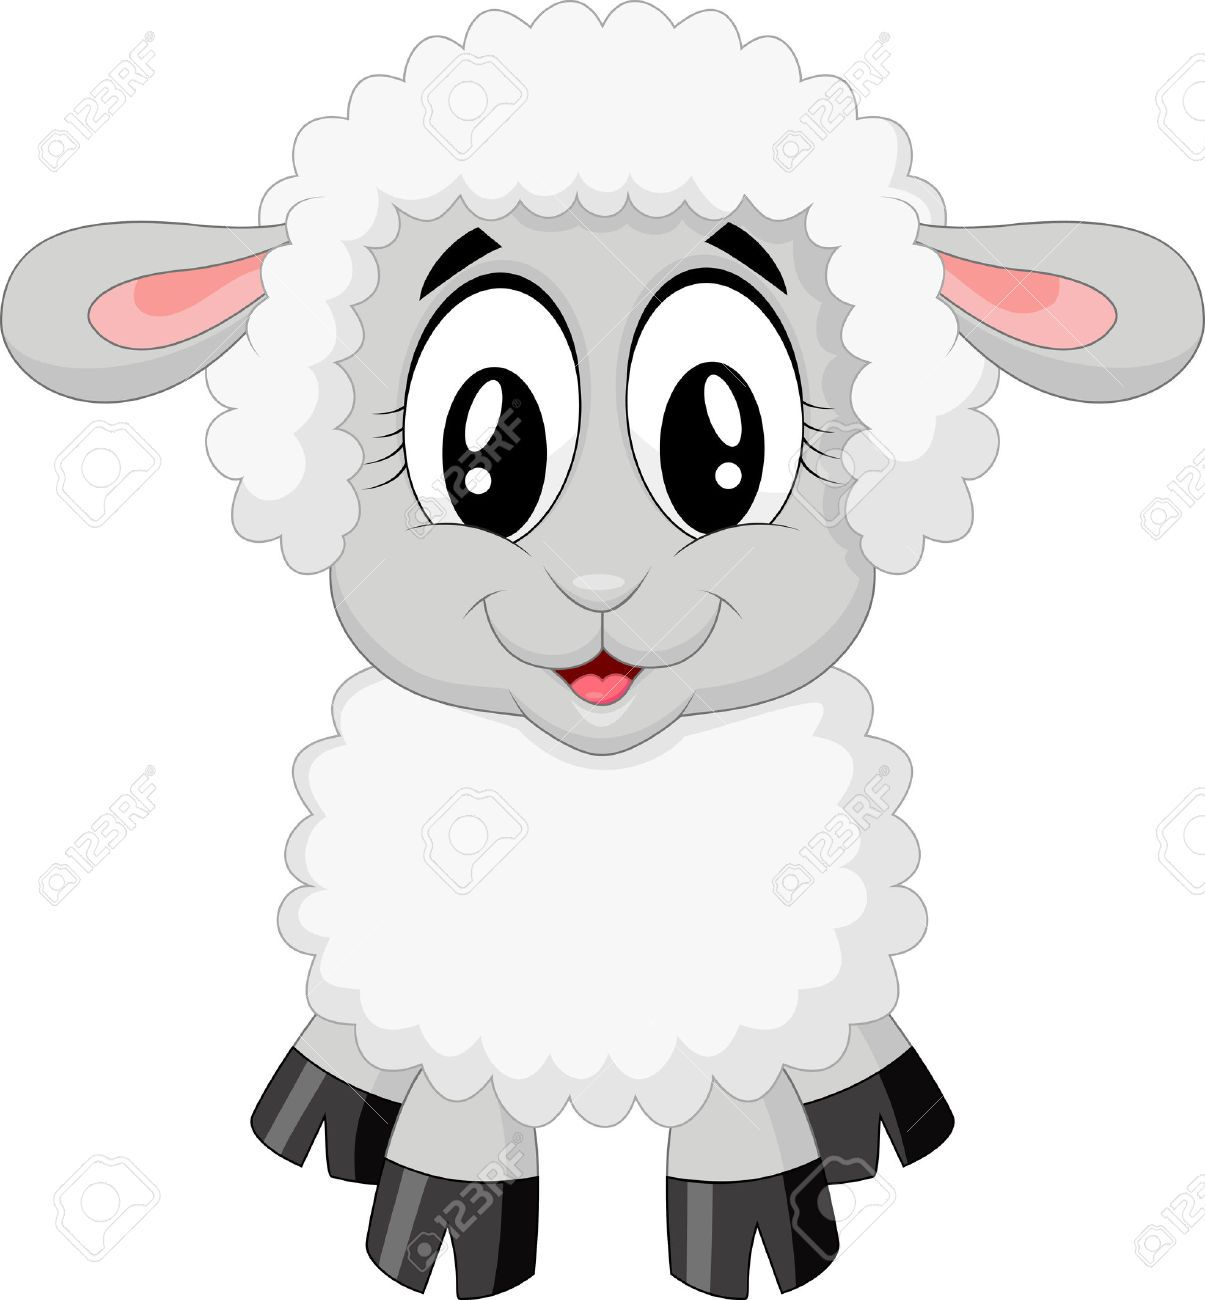 cute baby sheep cartoon - Pesquisa Google | Western party ... for cute animated sheep  26bof